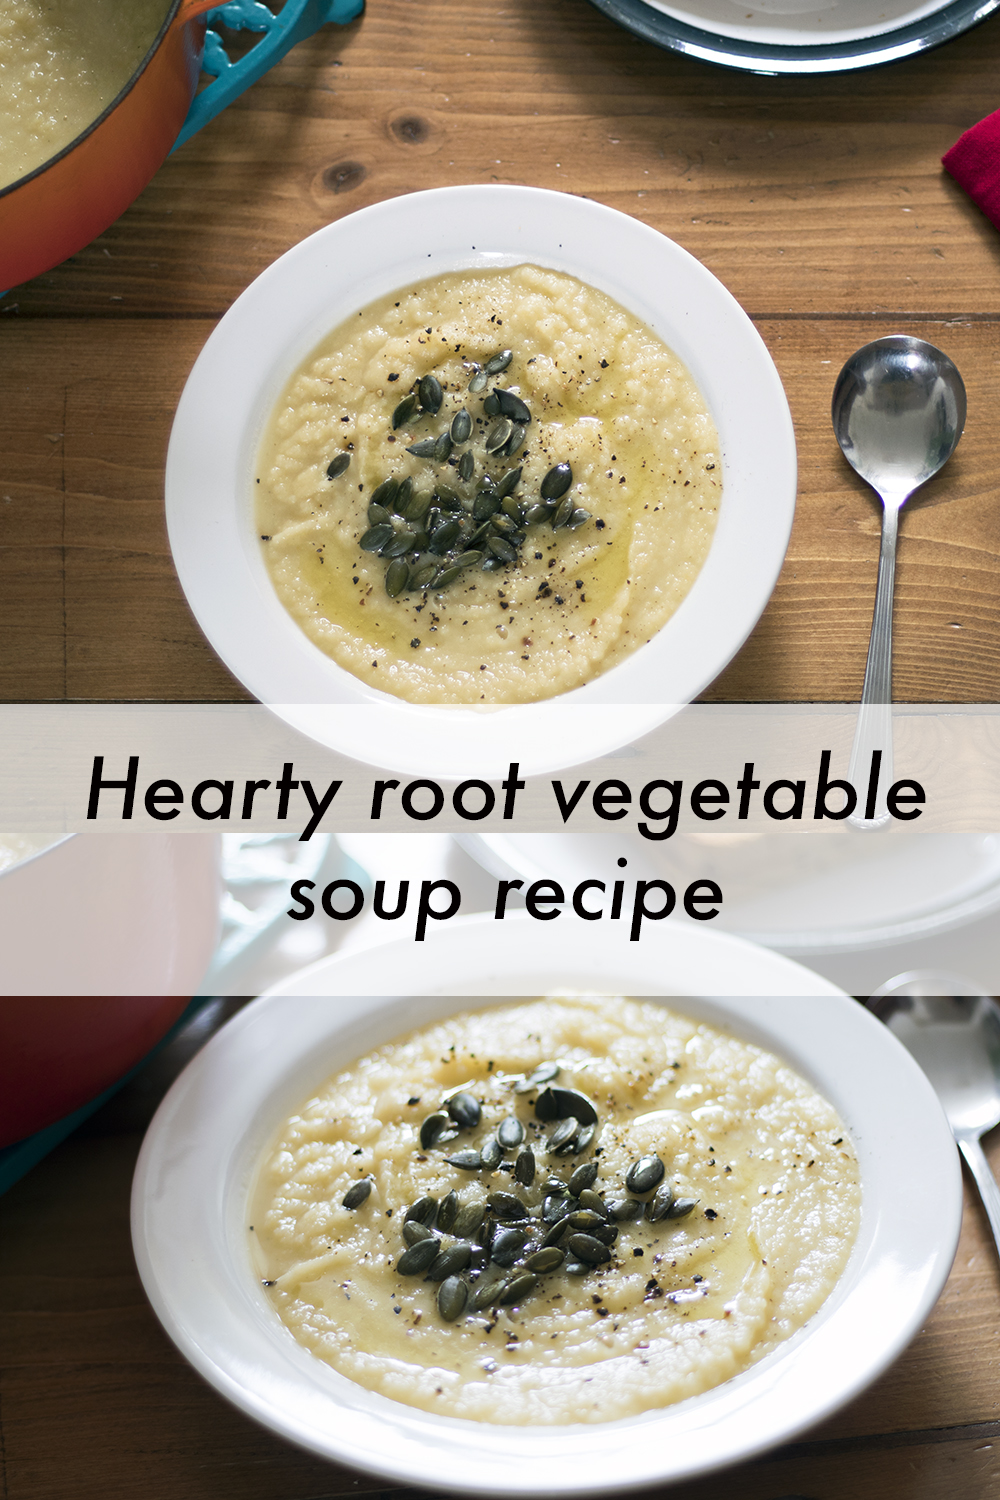 Hearty-root-vegetable-soup-recipe-vegan-leftovers-avoid-waste